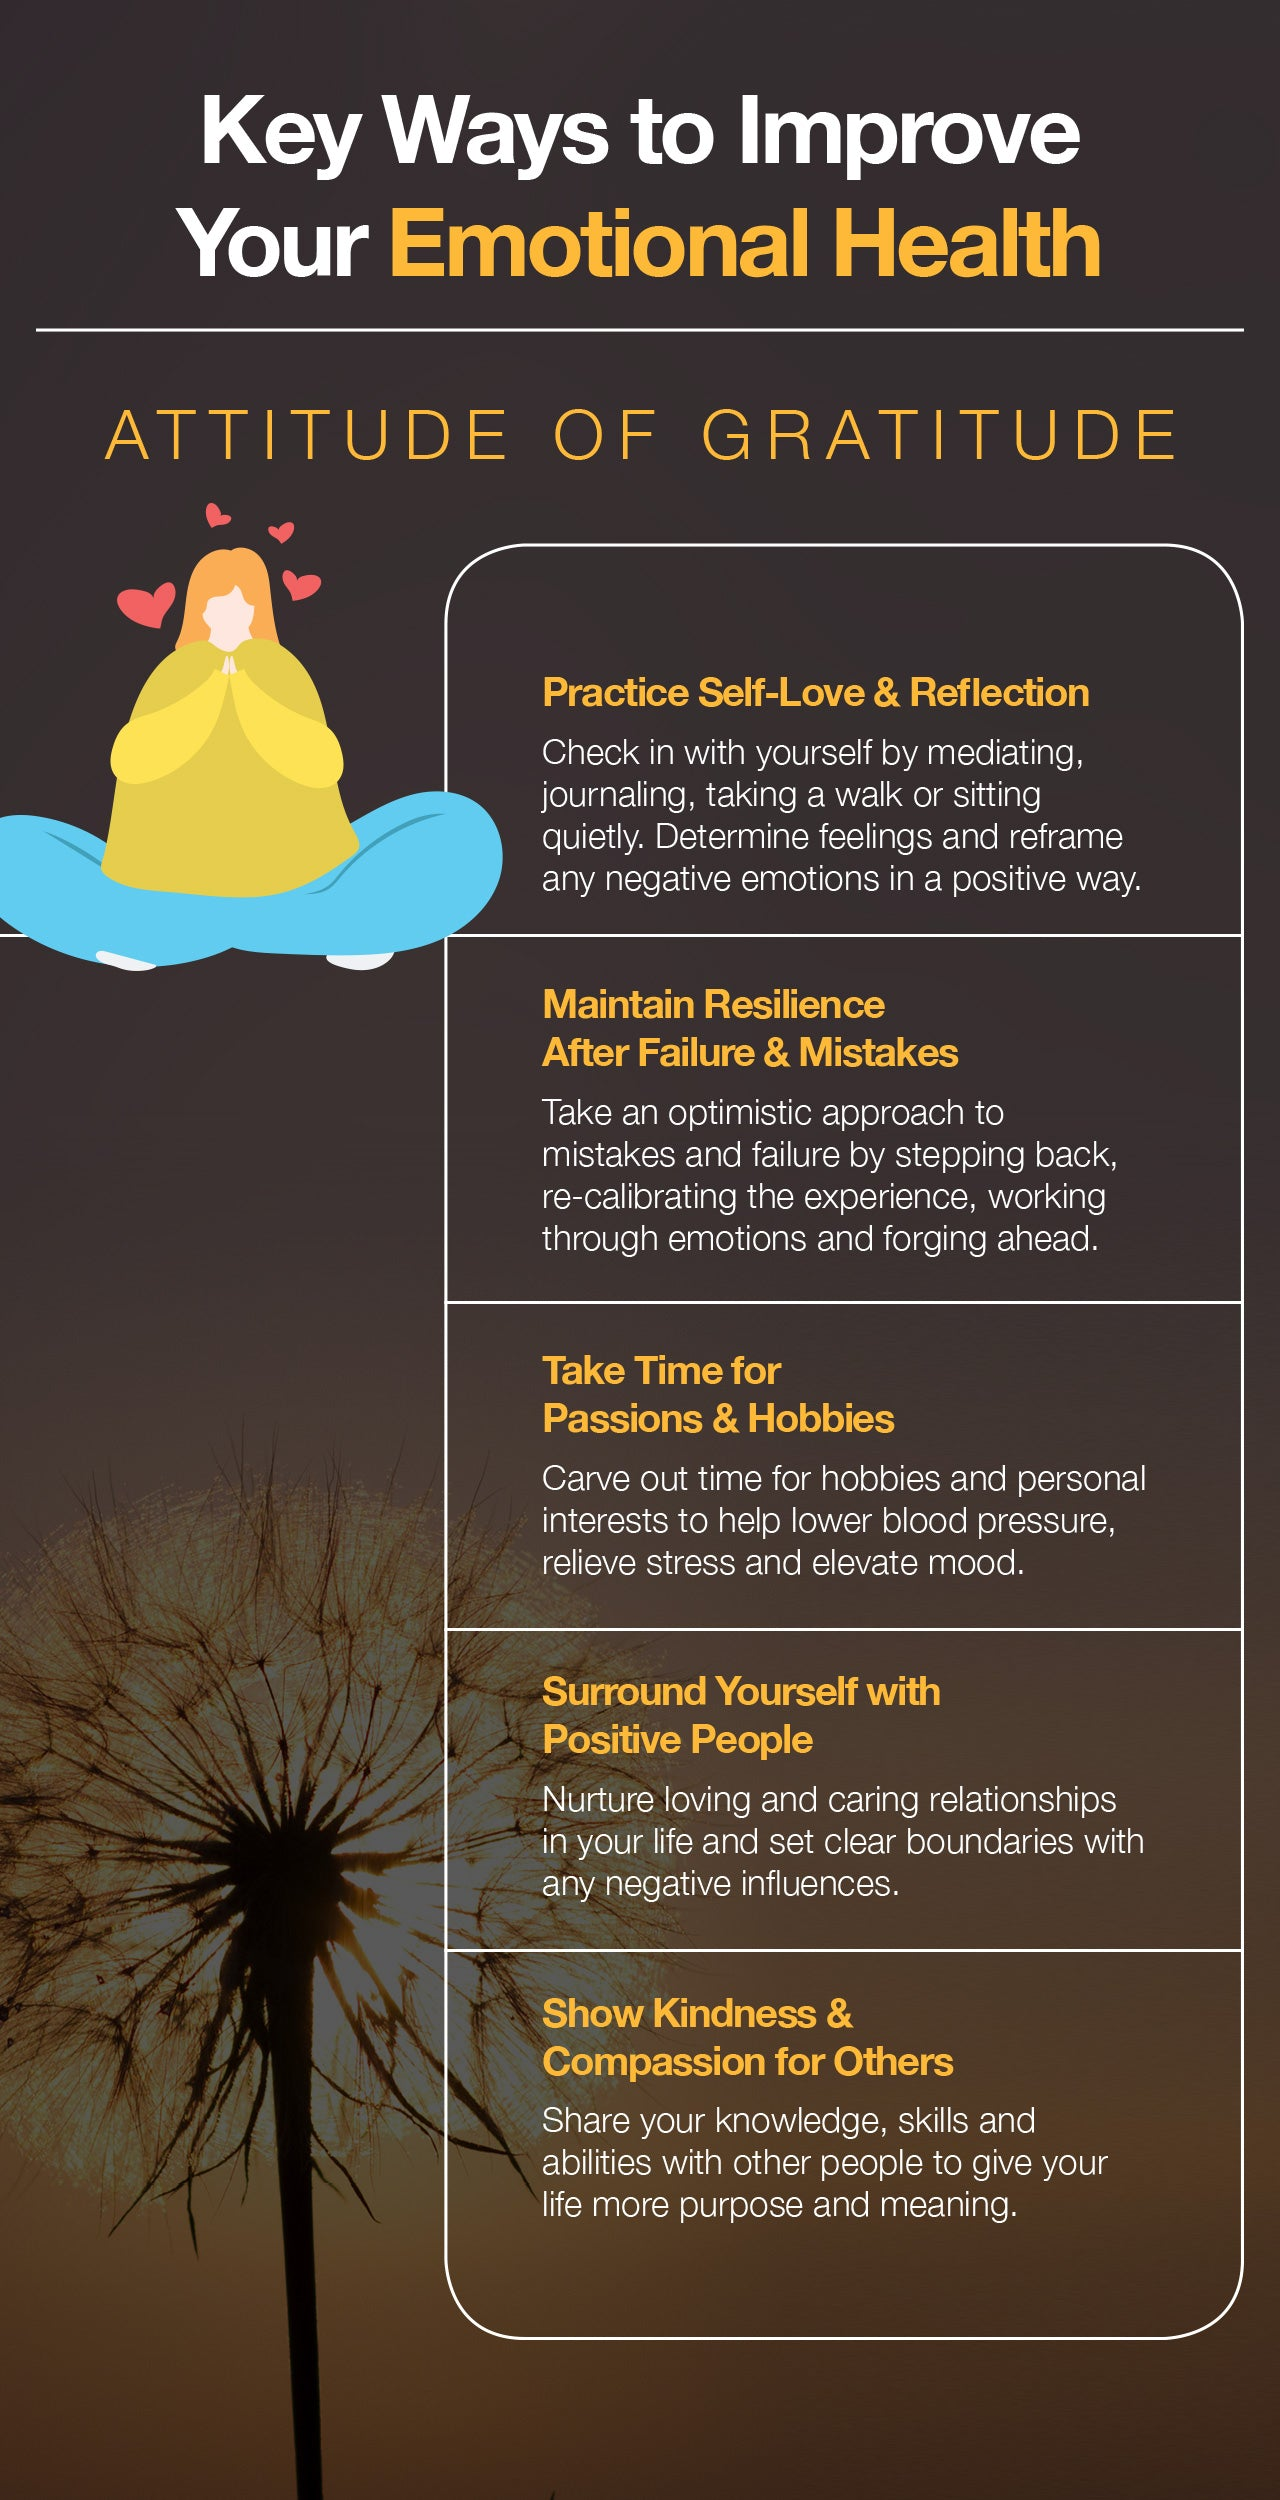 5 ways to improve your emotional health